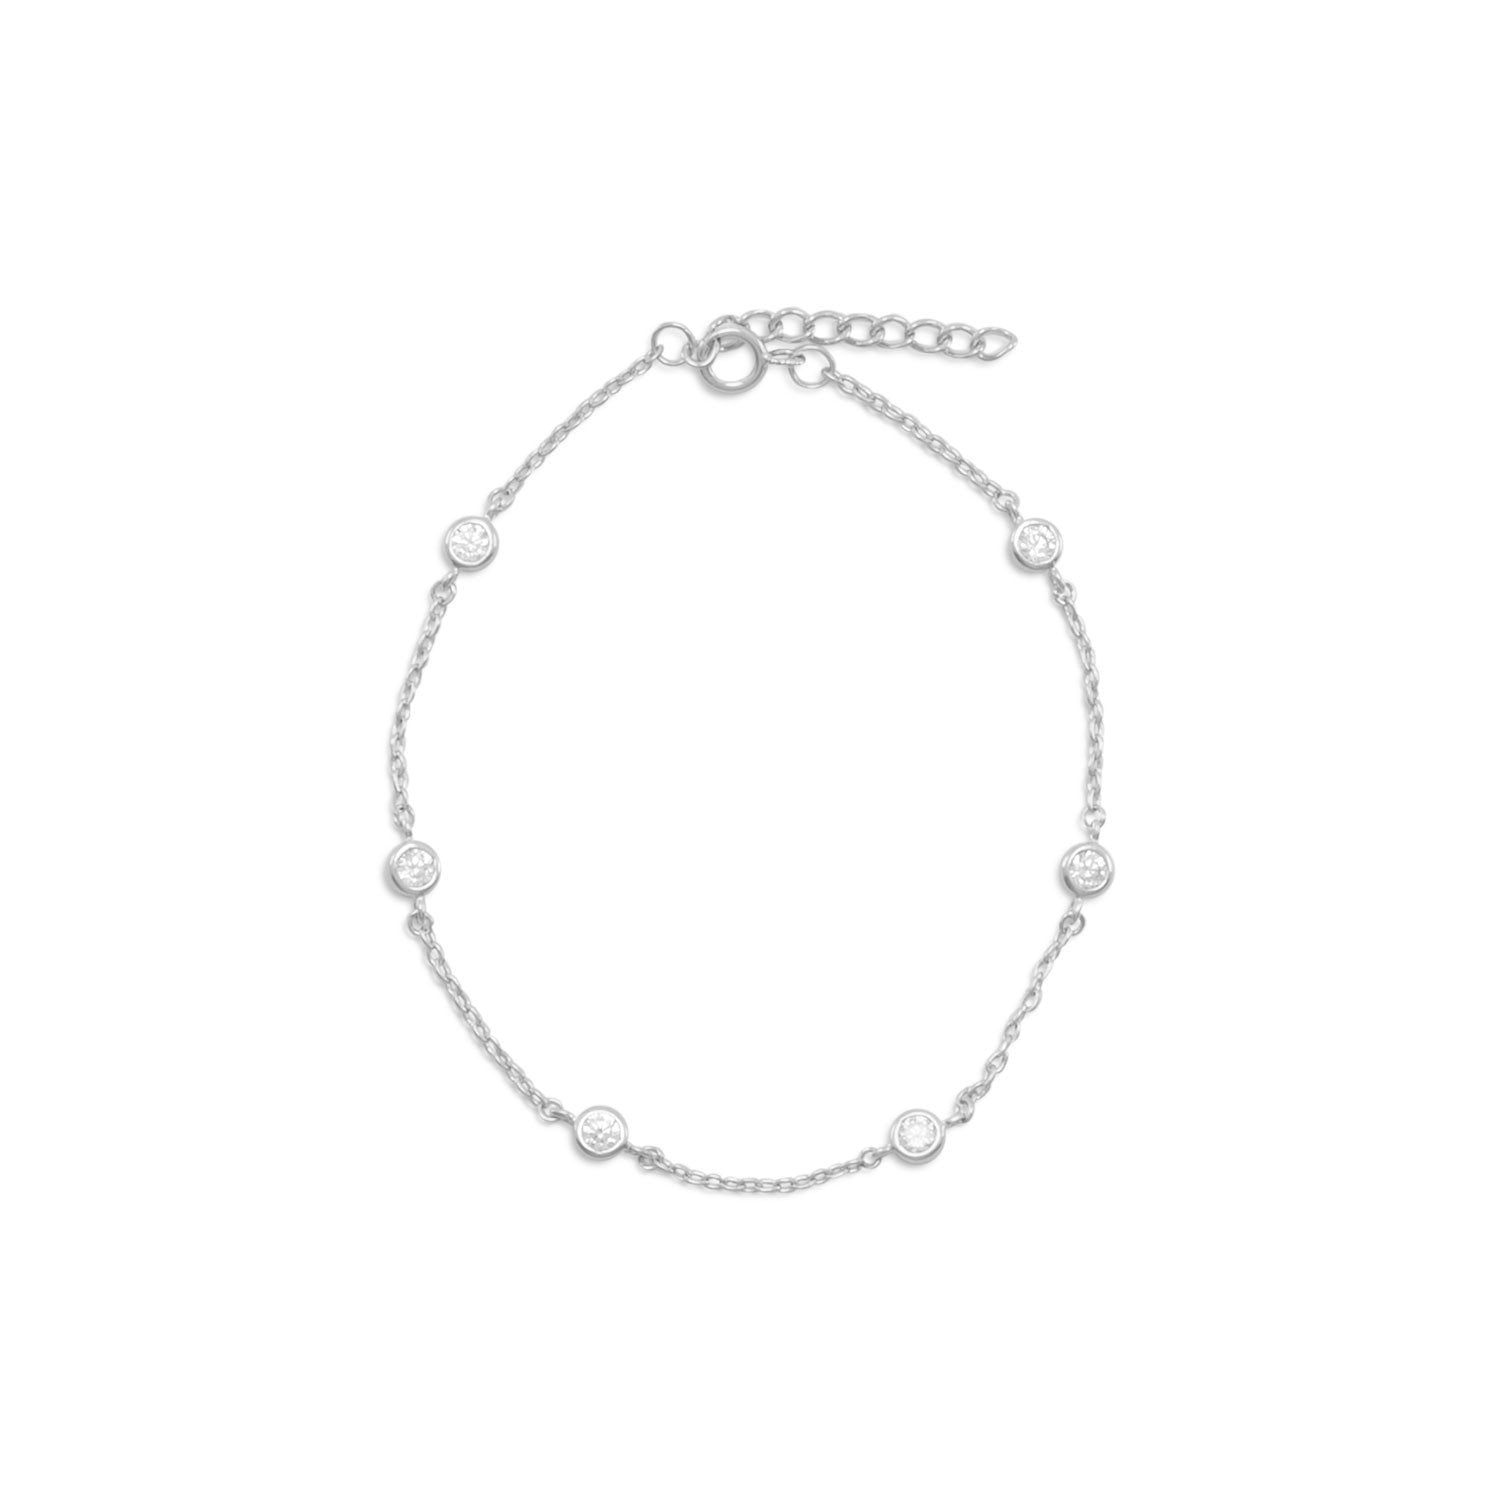 "9"" + 1"" Extension Rhodium Plated 6 Bezel Set CZ Anklet - Rocky Mt. Outlet Inc - Shop & Save 24/7"